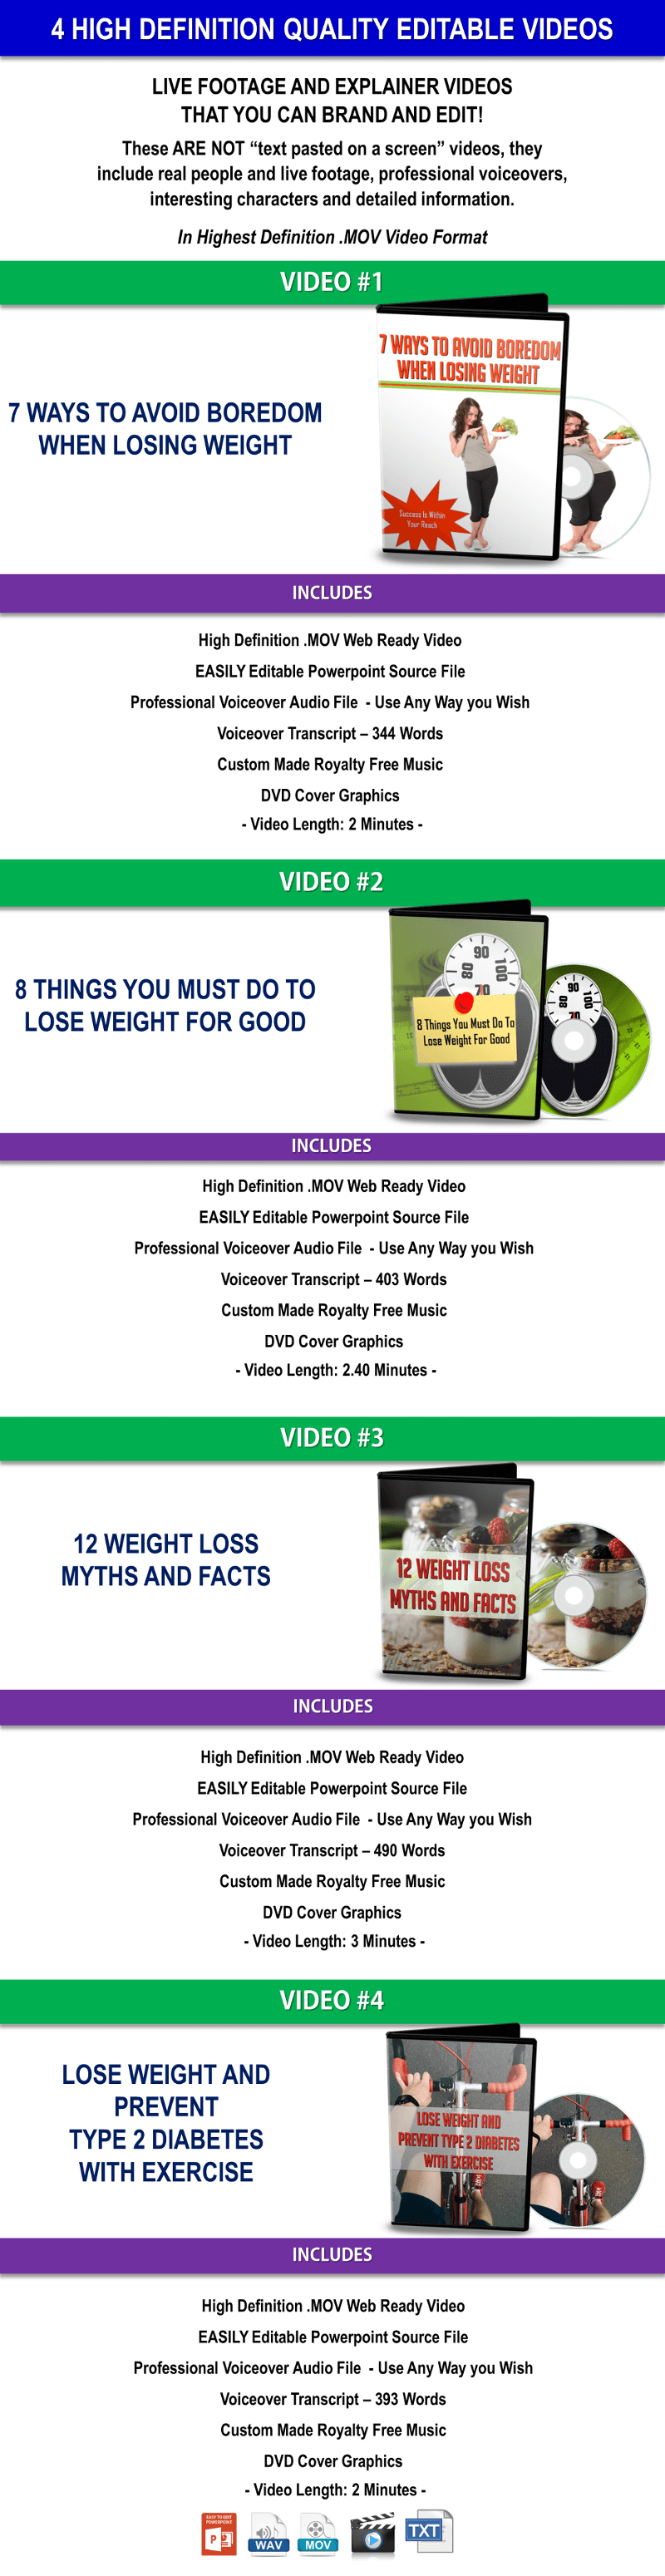 Giant Permanent Weight Loss PLR: eBooks, Videos, Infographics, Articles